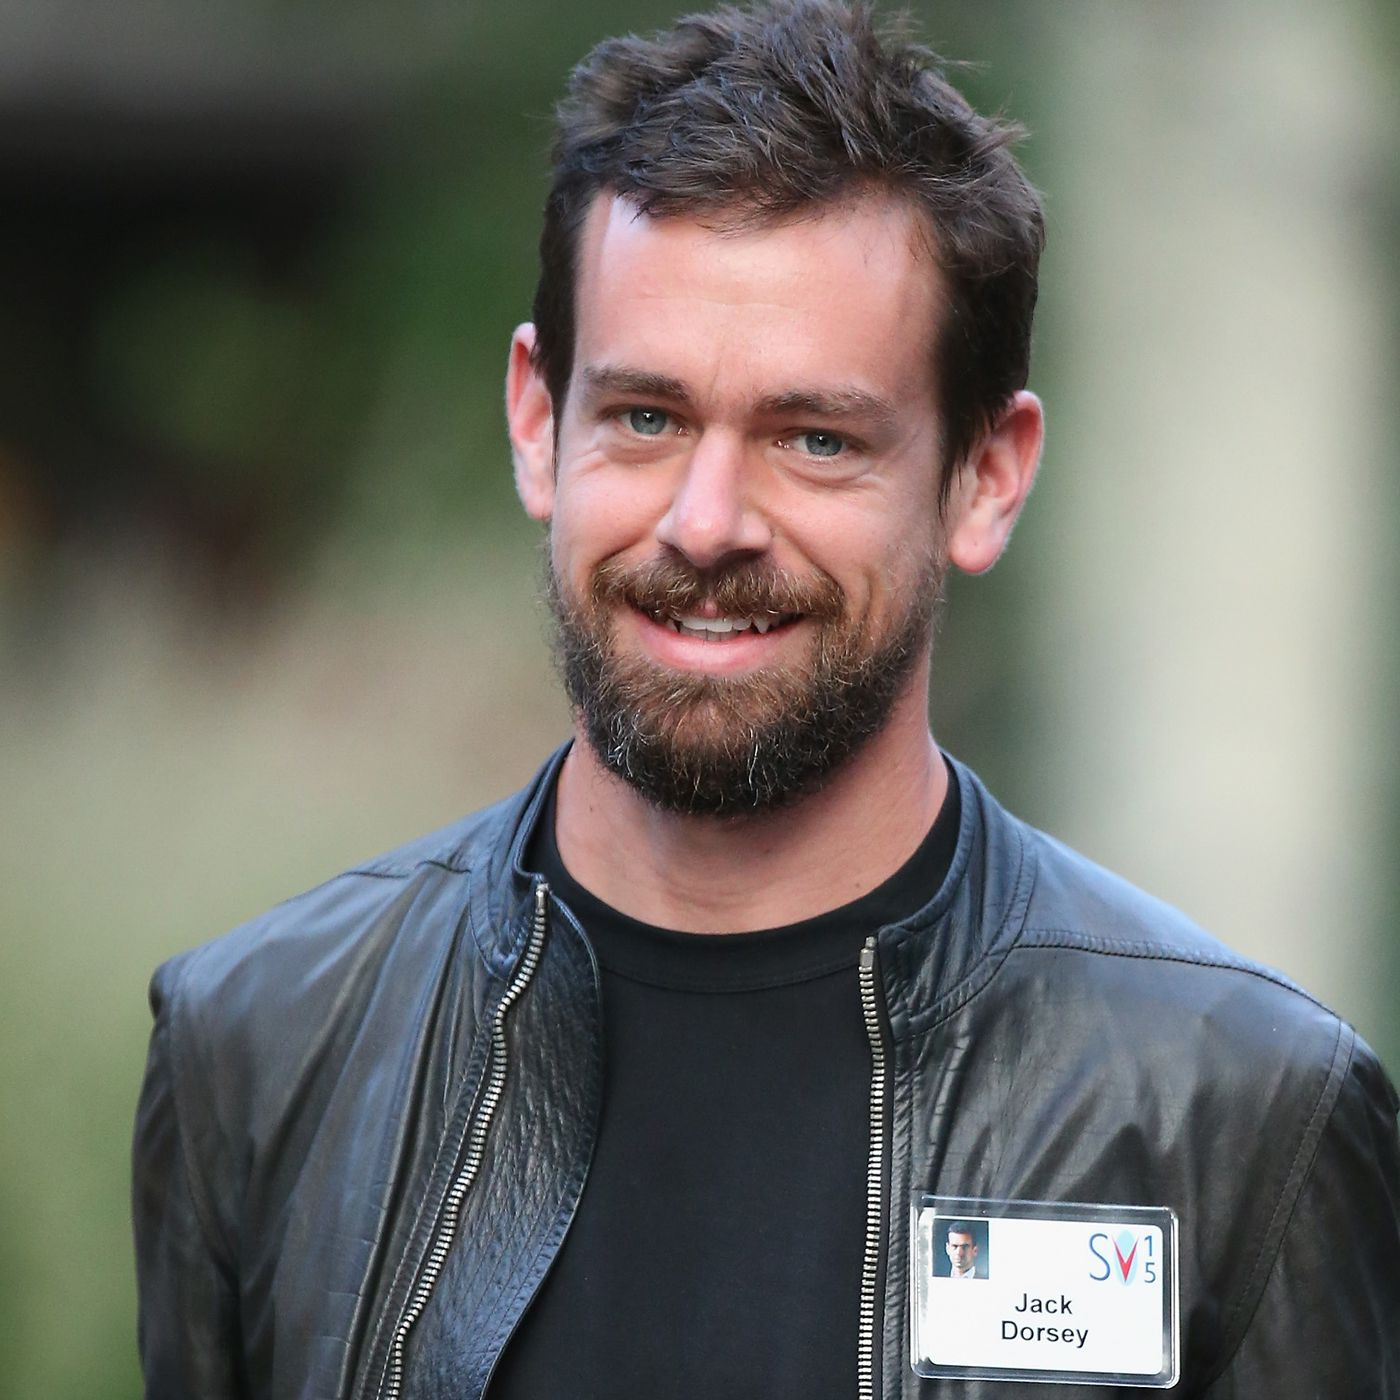 Sources Jack Dorsey Expected To Be Named Permanent Twitter Ceo Vox